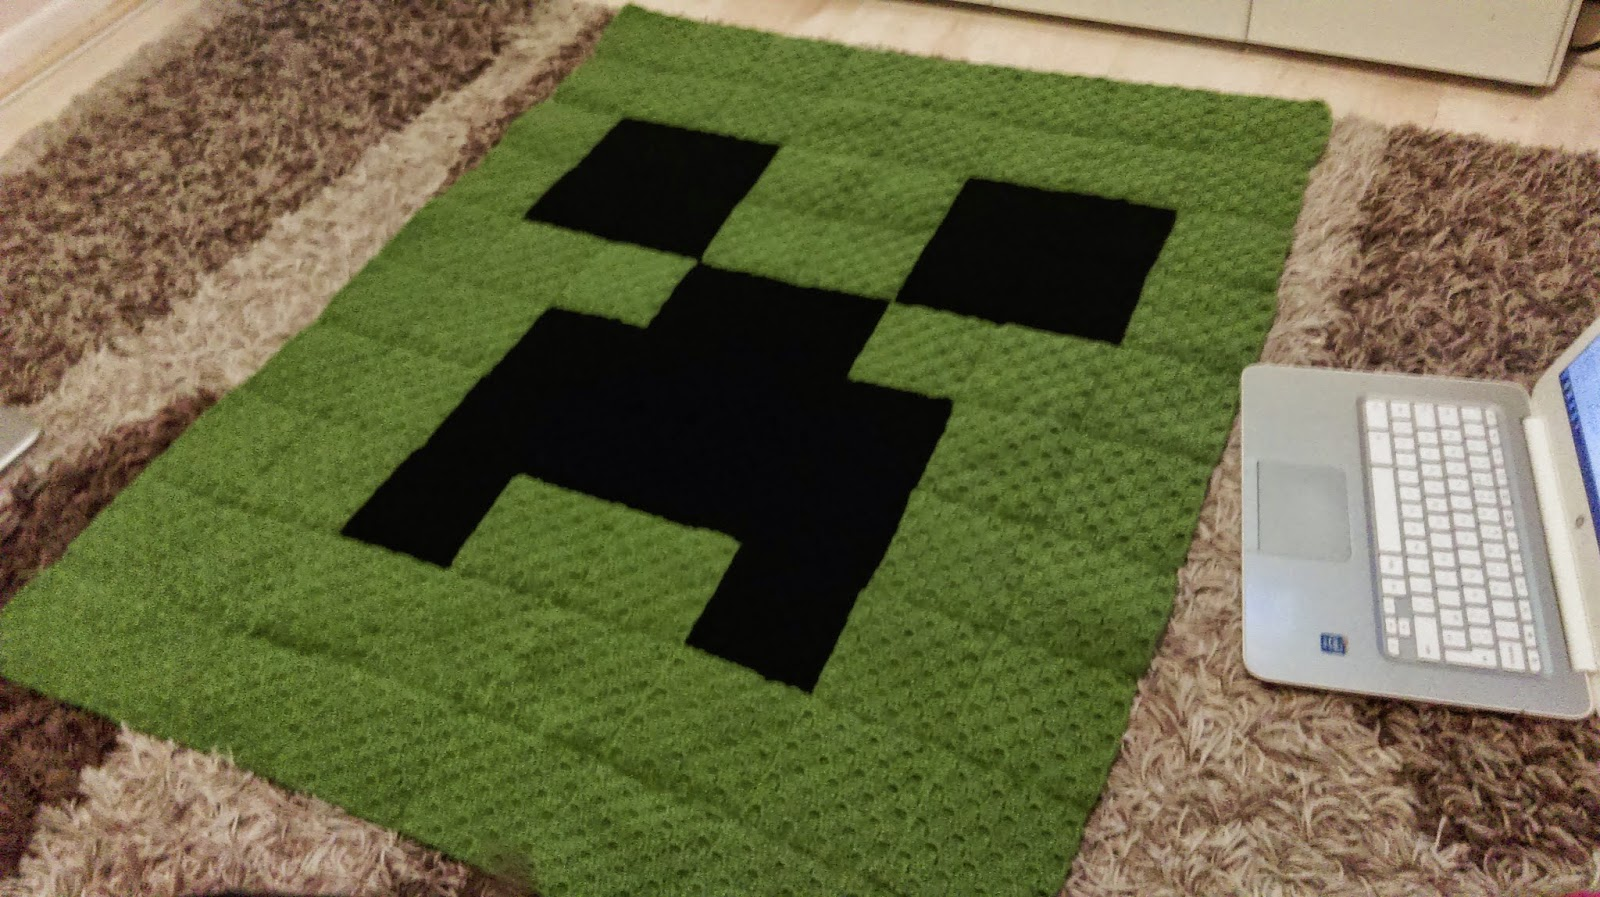 Minecraft Crochet Blanket www.galleryhip.com - The ...